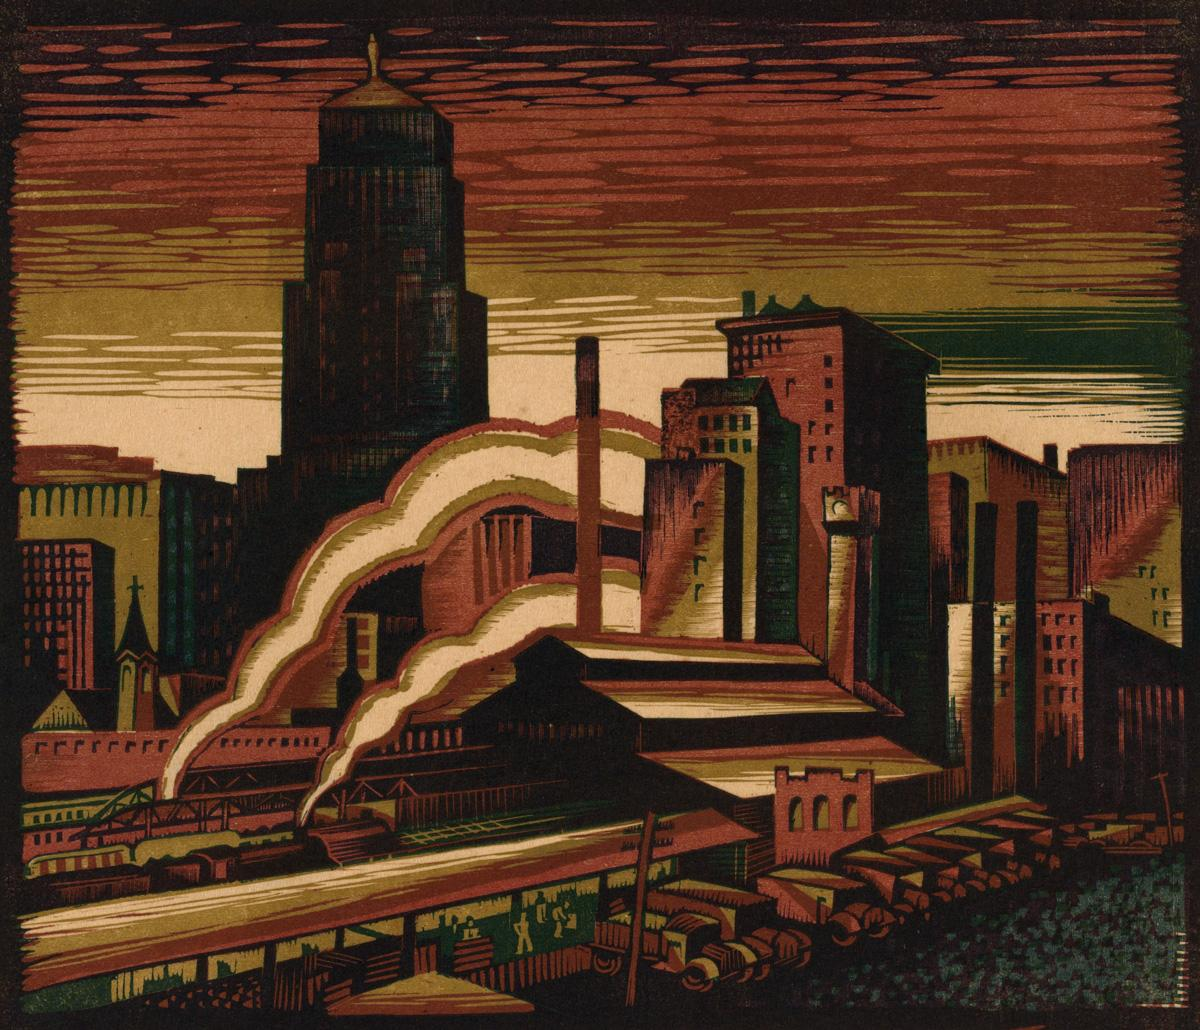 Charles Turzak South of the Loop, ca. 1934 Woodcut Allocated by the  U.S. Government commissioned through the New Deal art projects 1934-2-46 © Charles Turzak